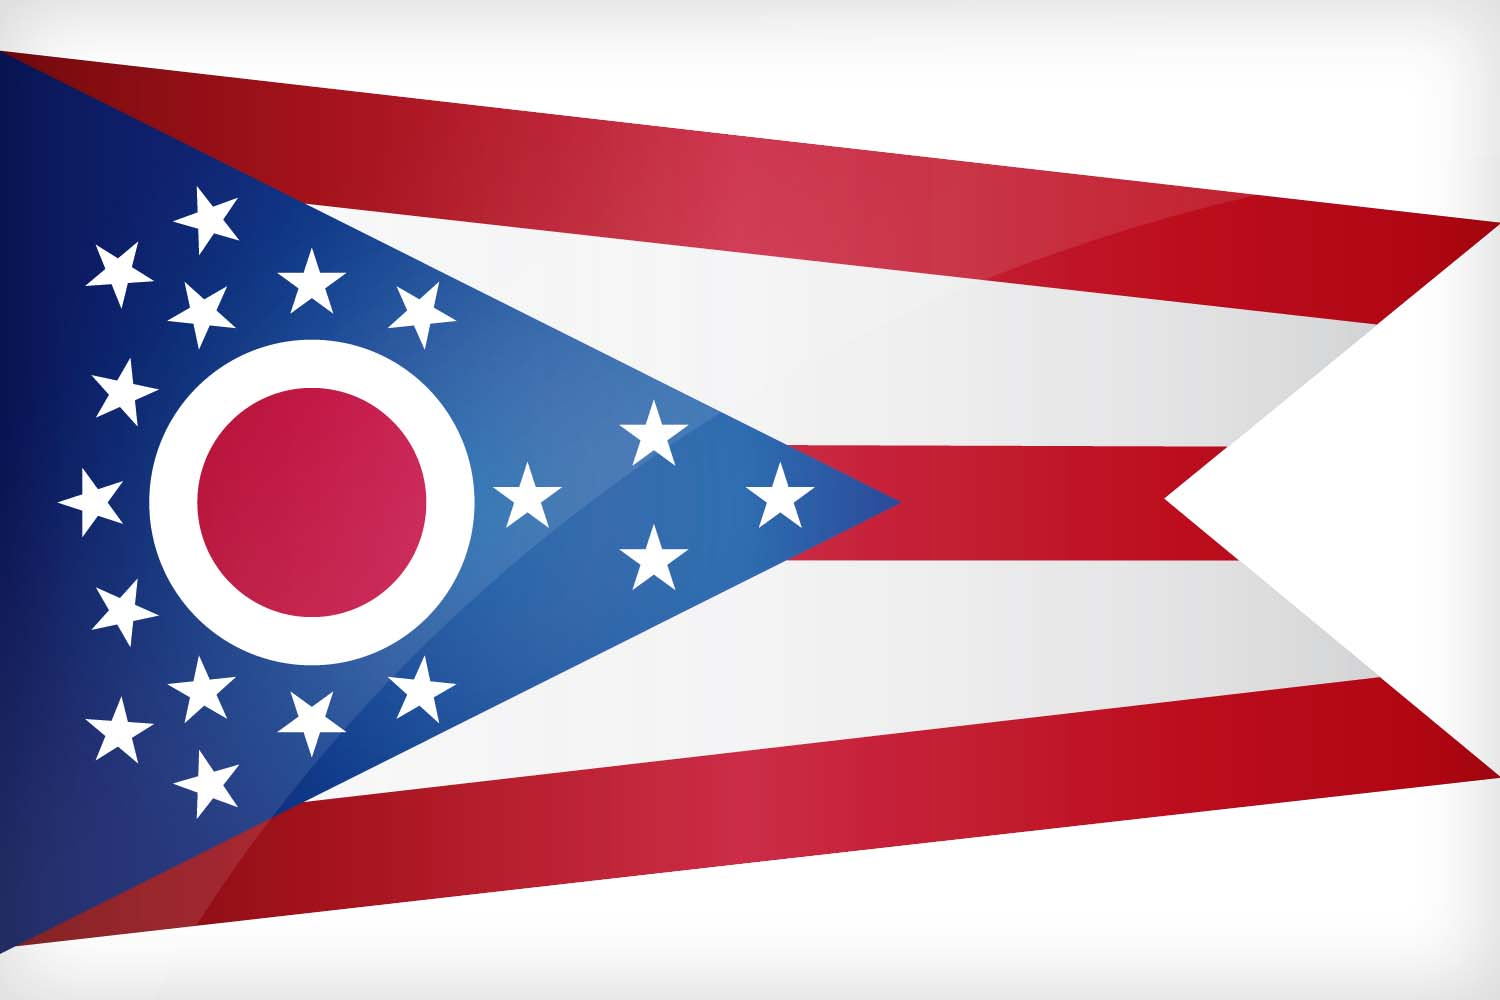 Flag of Ohio - Download the official Ohio's flag